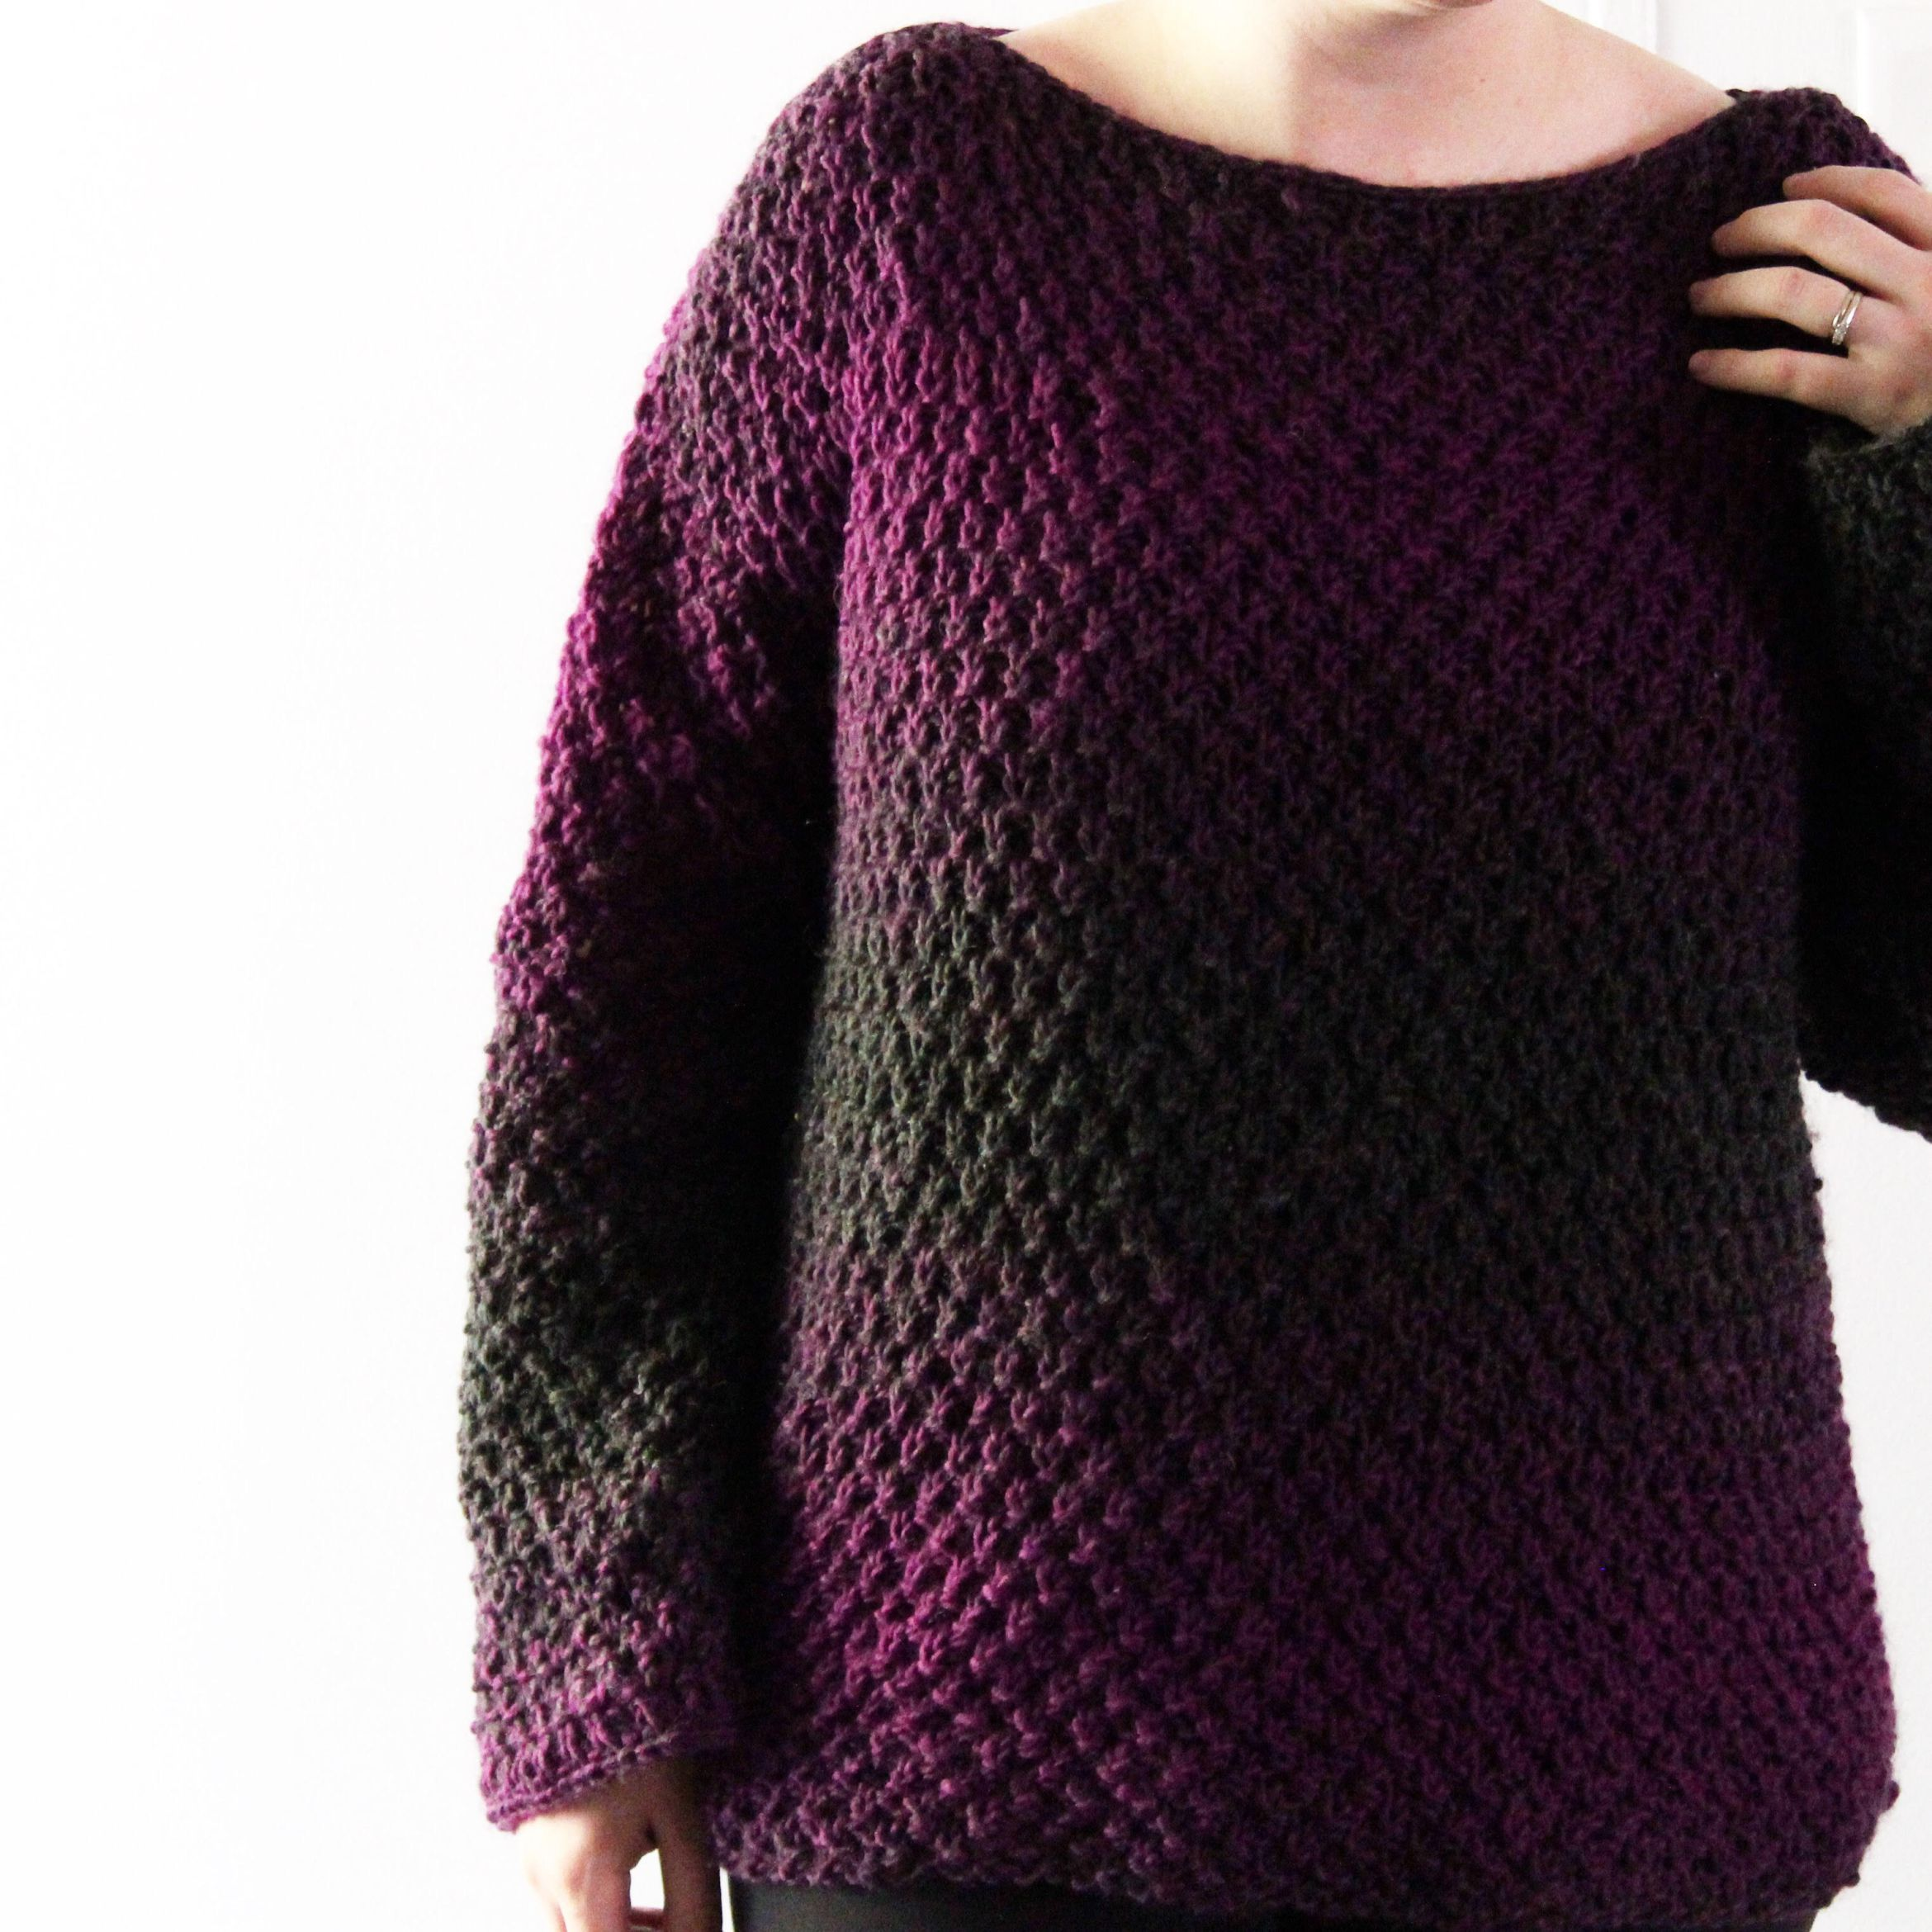 Are you ready for a gorgeous and easy knitting pattern? Then get ...